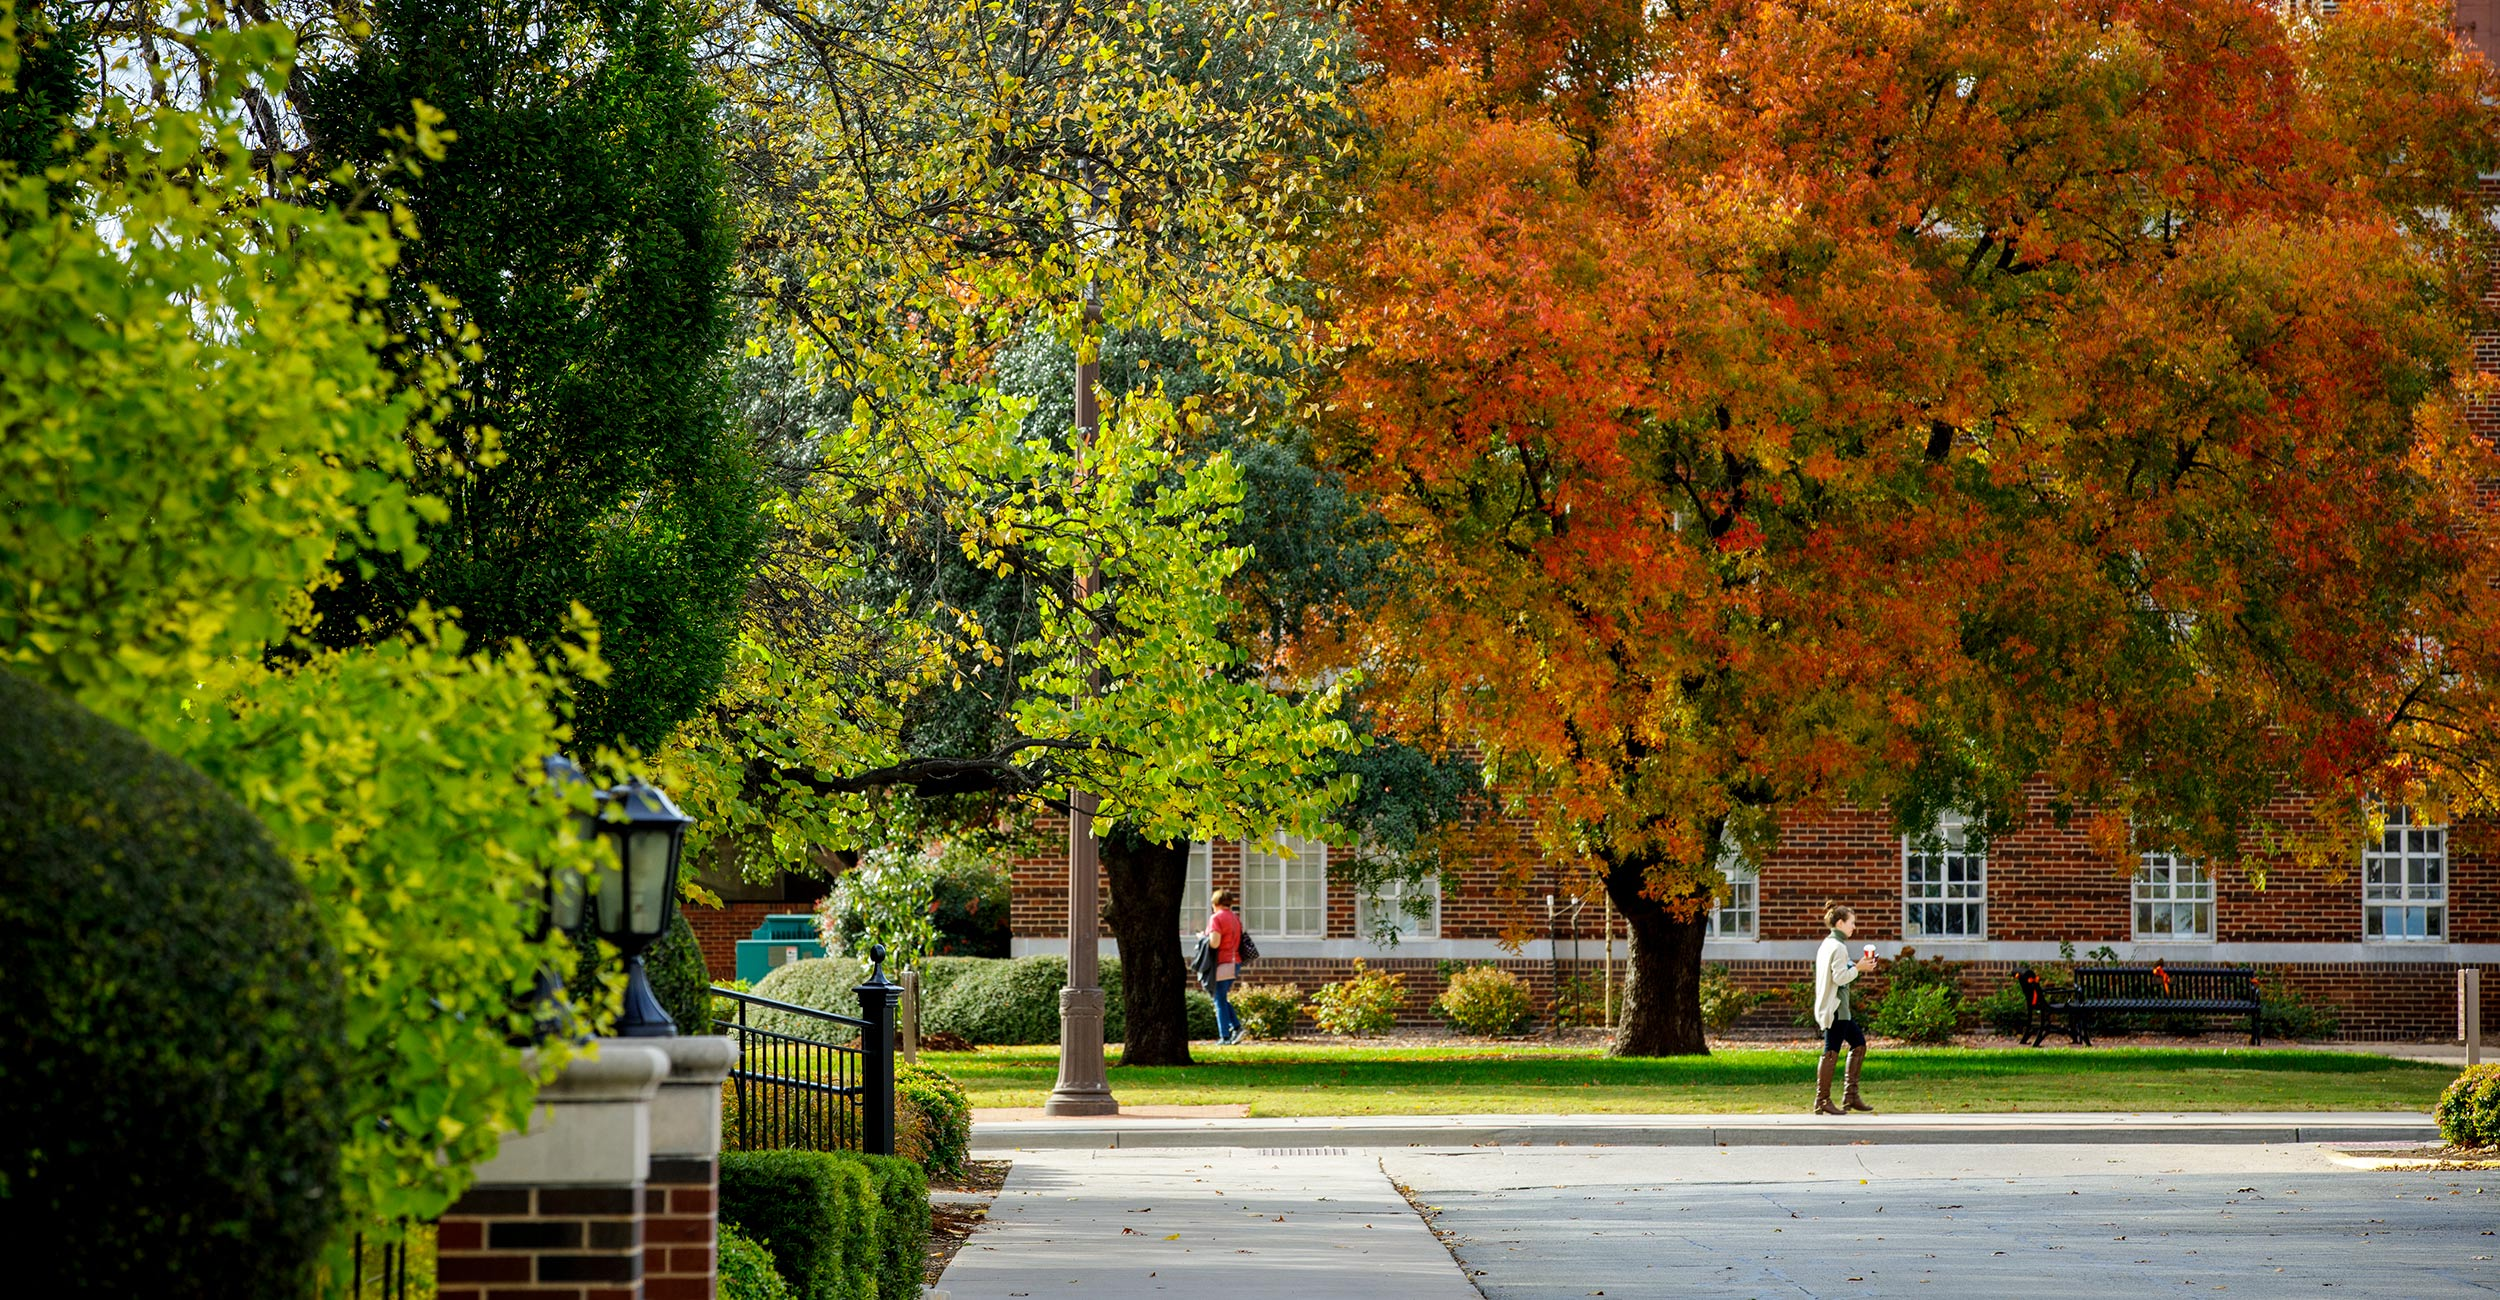 Picture of trees on campus.